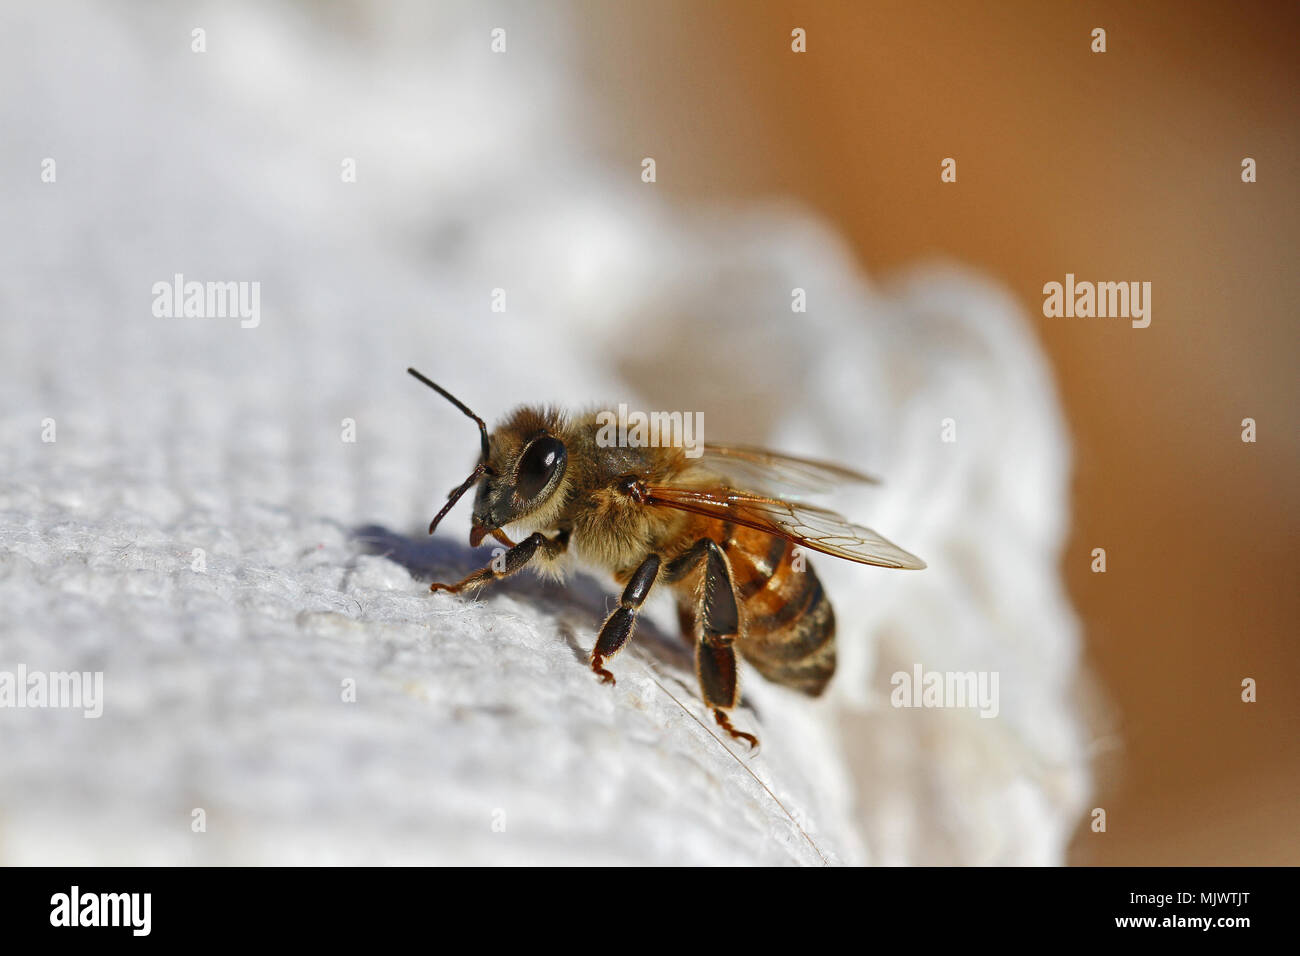 honey bee or worker bee extreme close up Latin apis mellifera crawling on a white cloth in Italy in springtime - Stock Image